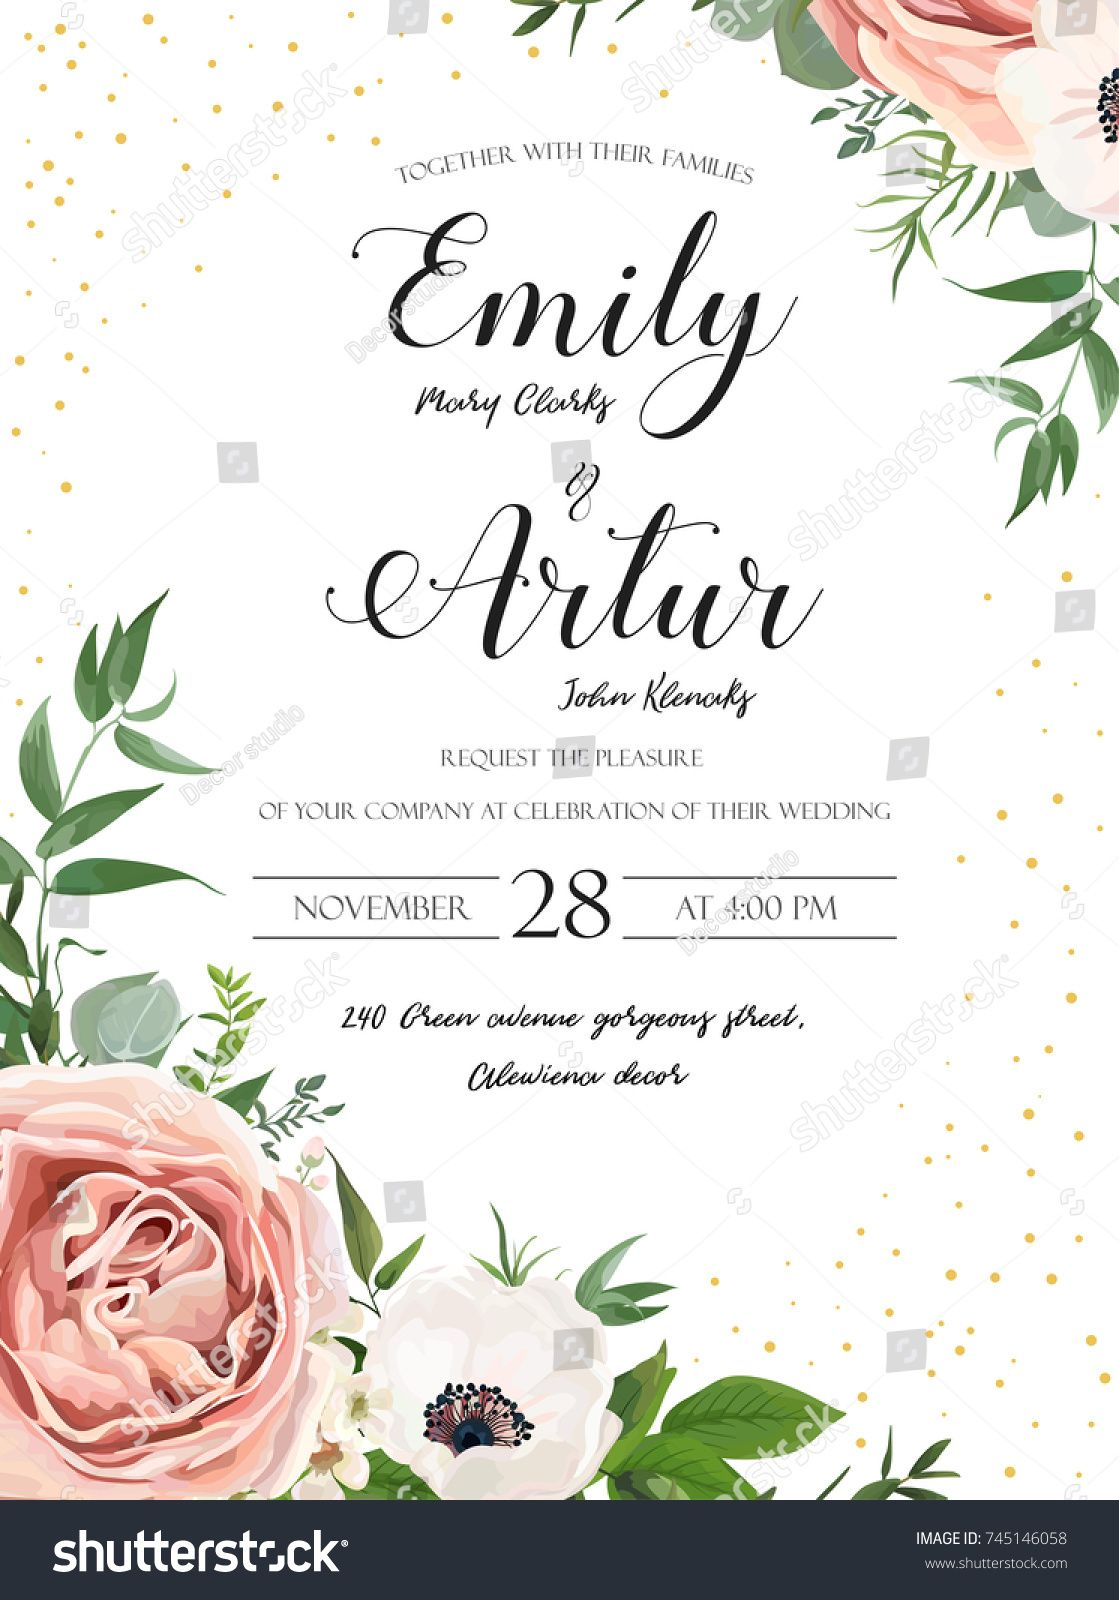 Wedding Floral Invite Invitation Card Design Rose Pink Lavender